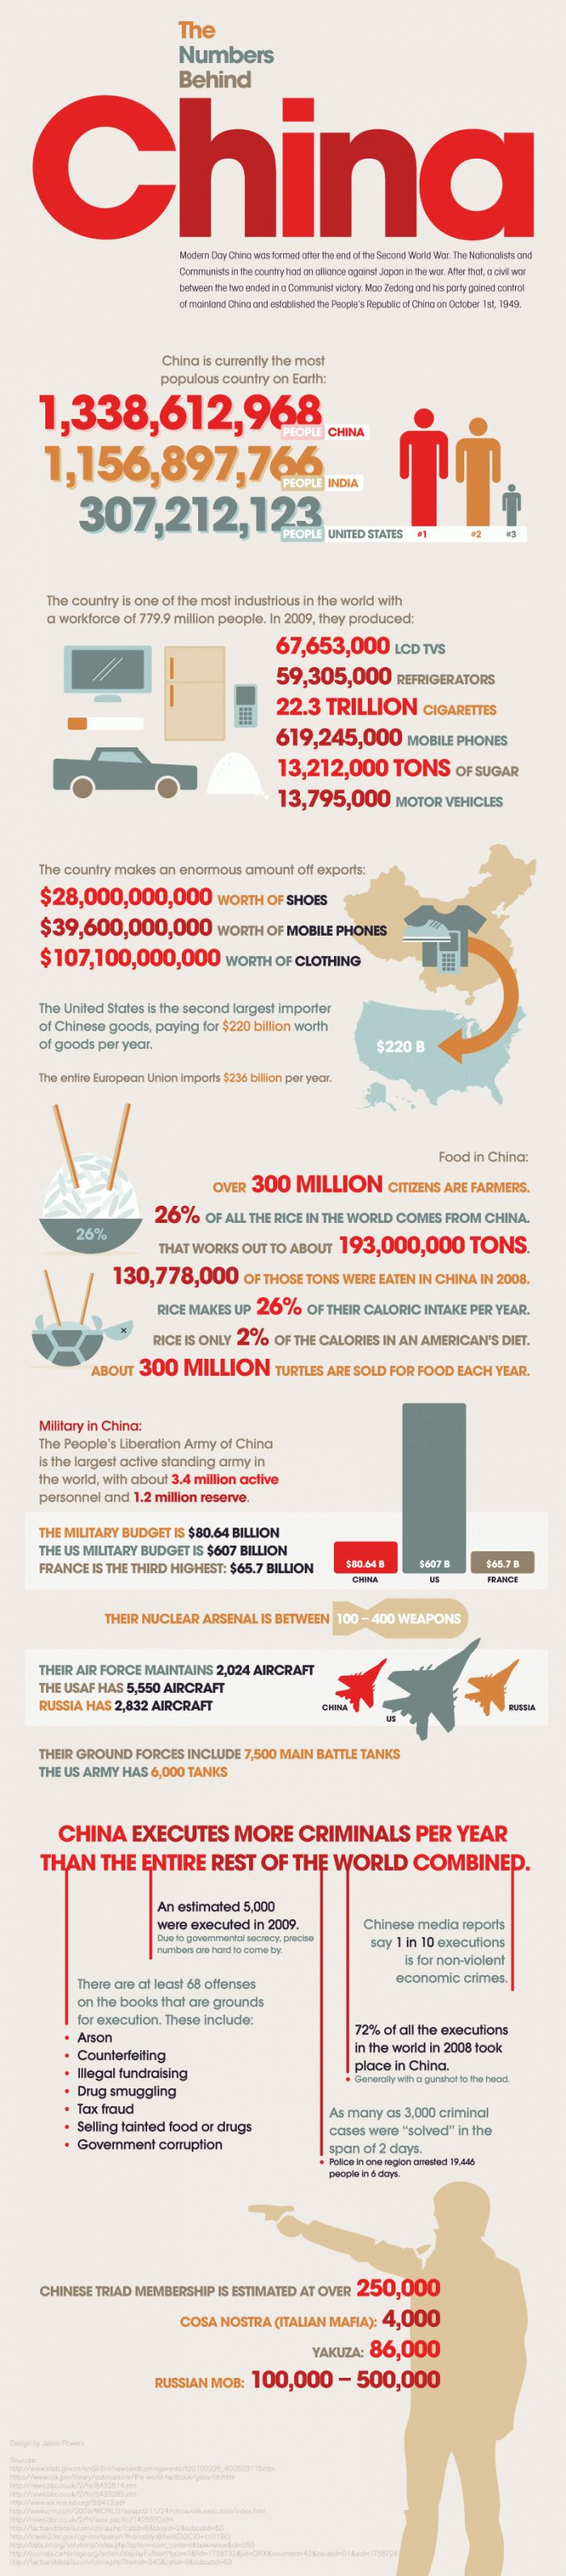 http://www.dailyinfographic.com/the-numbers-behind-china